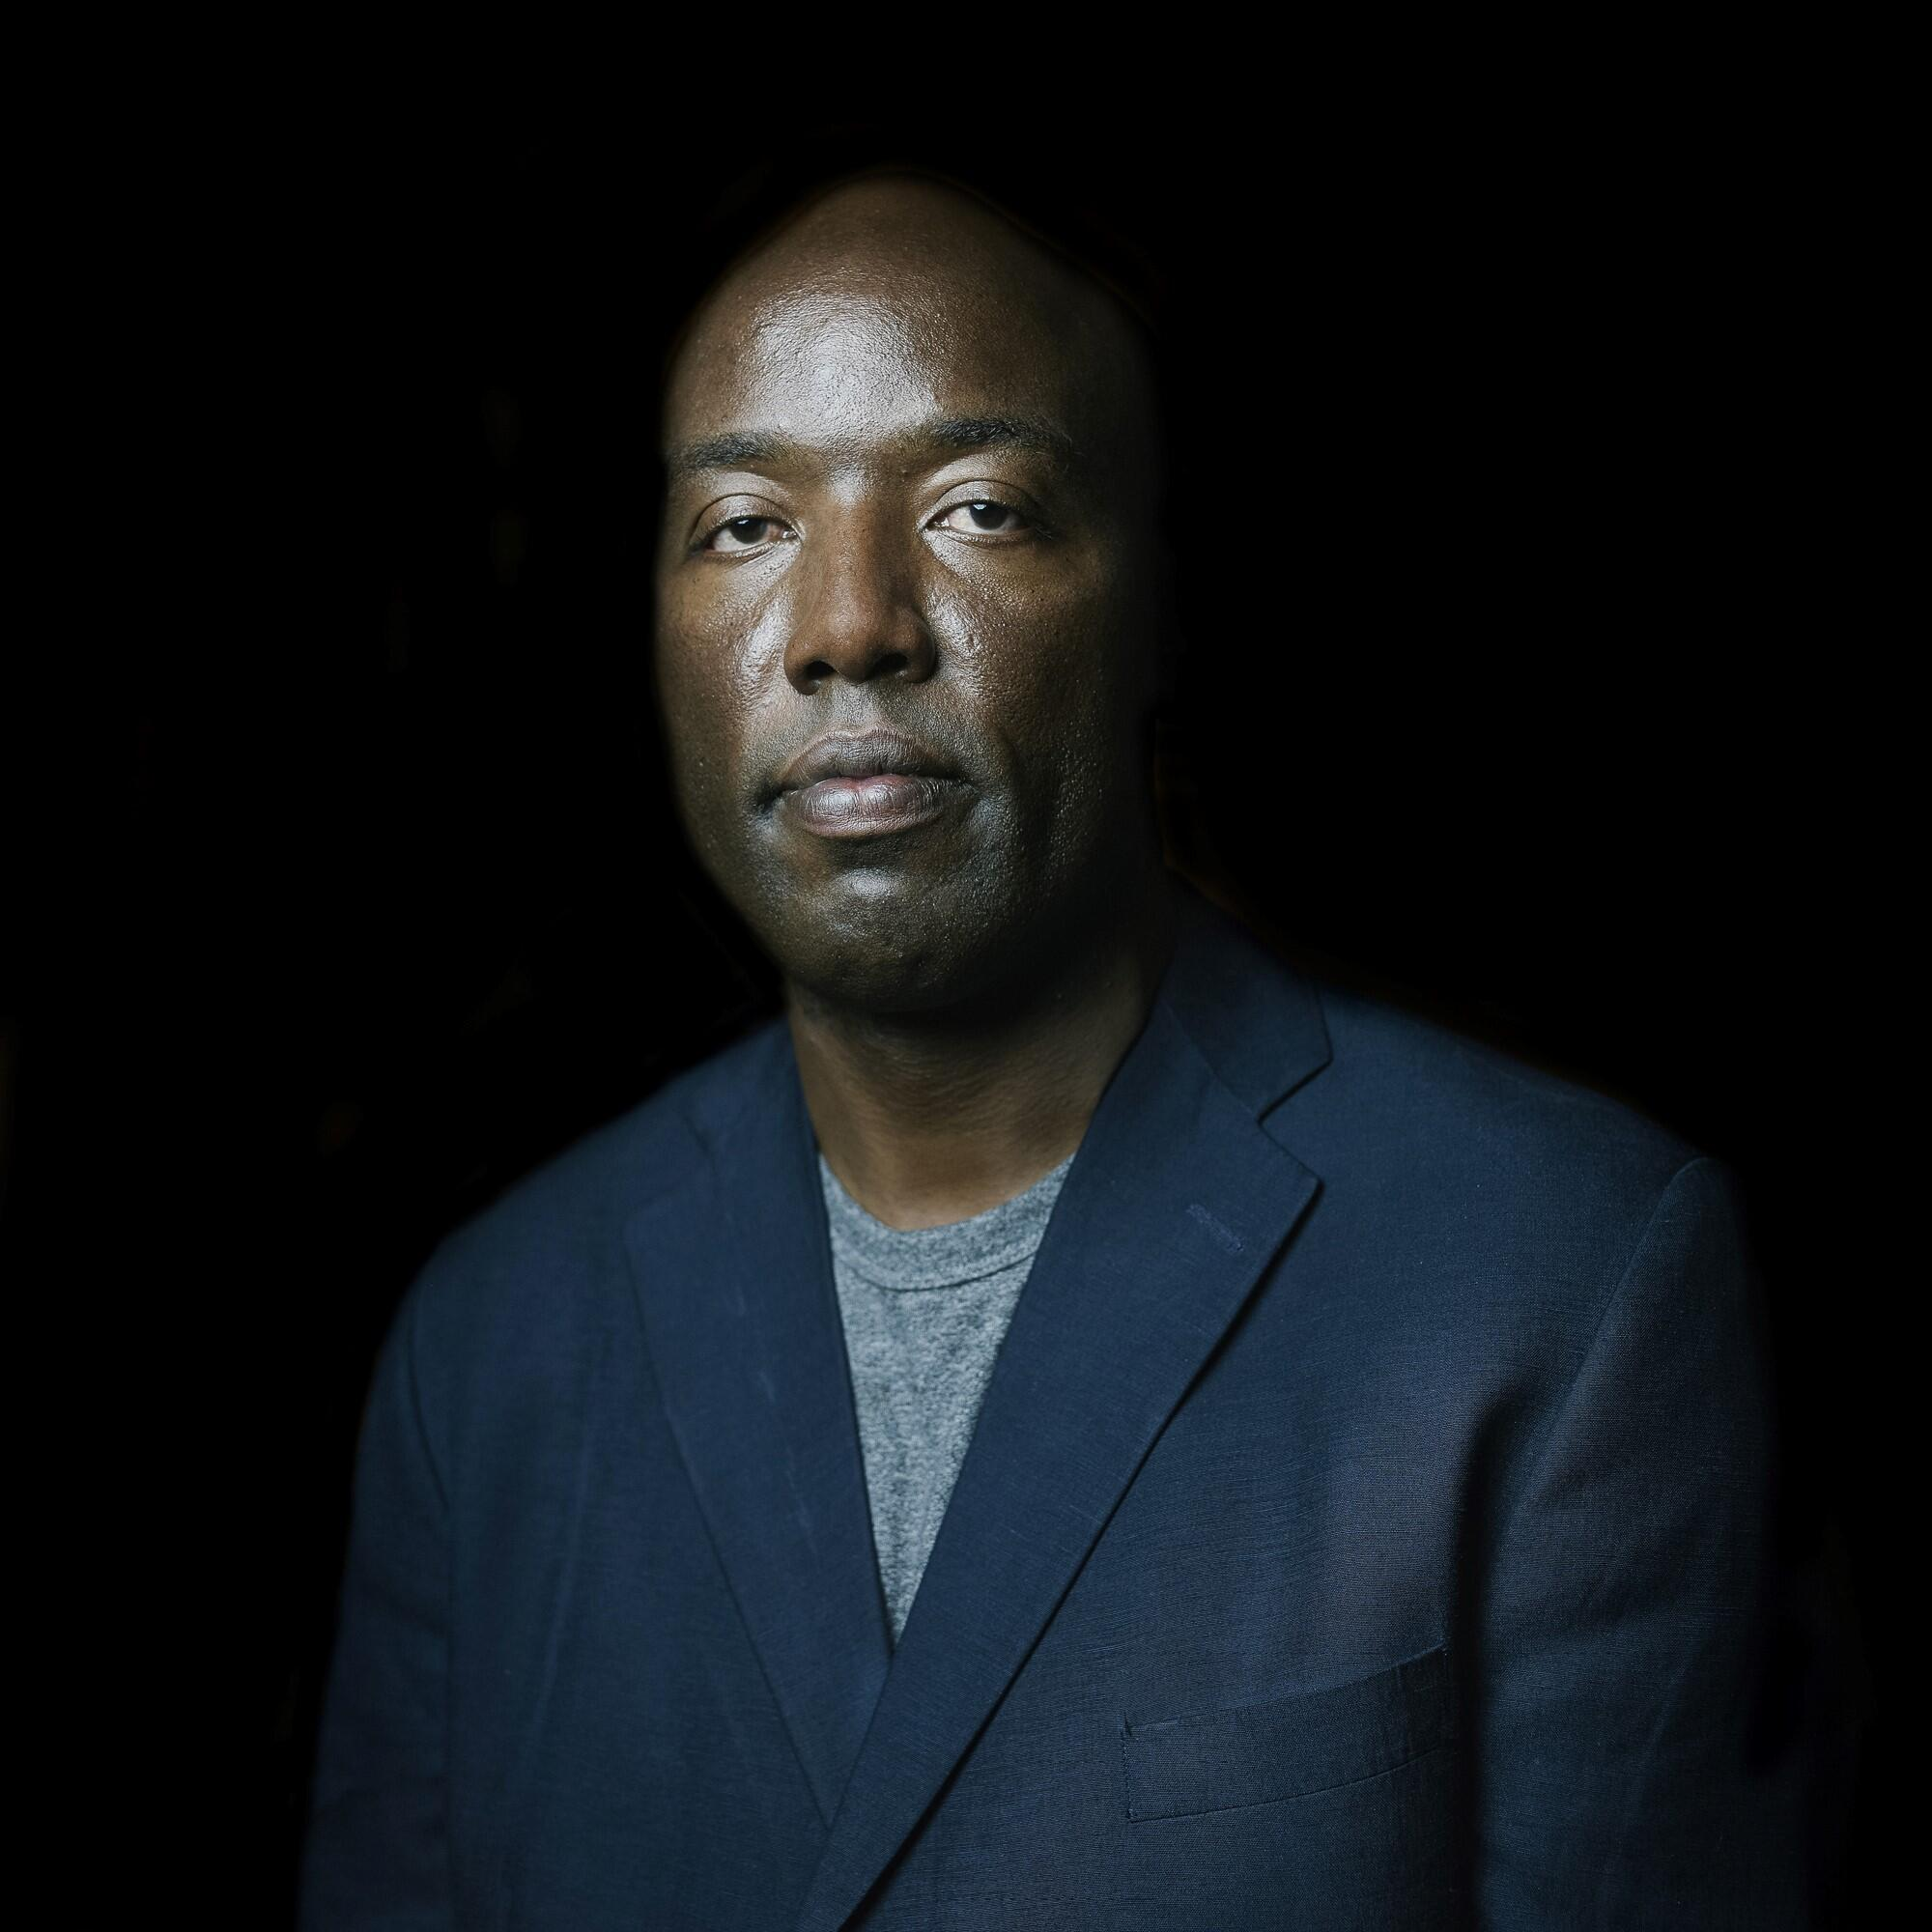 Former death row prisoner and prison reform advocate Pete Ouko was invited by the organisation 'Together Against the Death Penalty' to tell his story, Paris, 9 October 2019